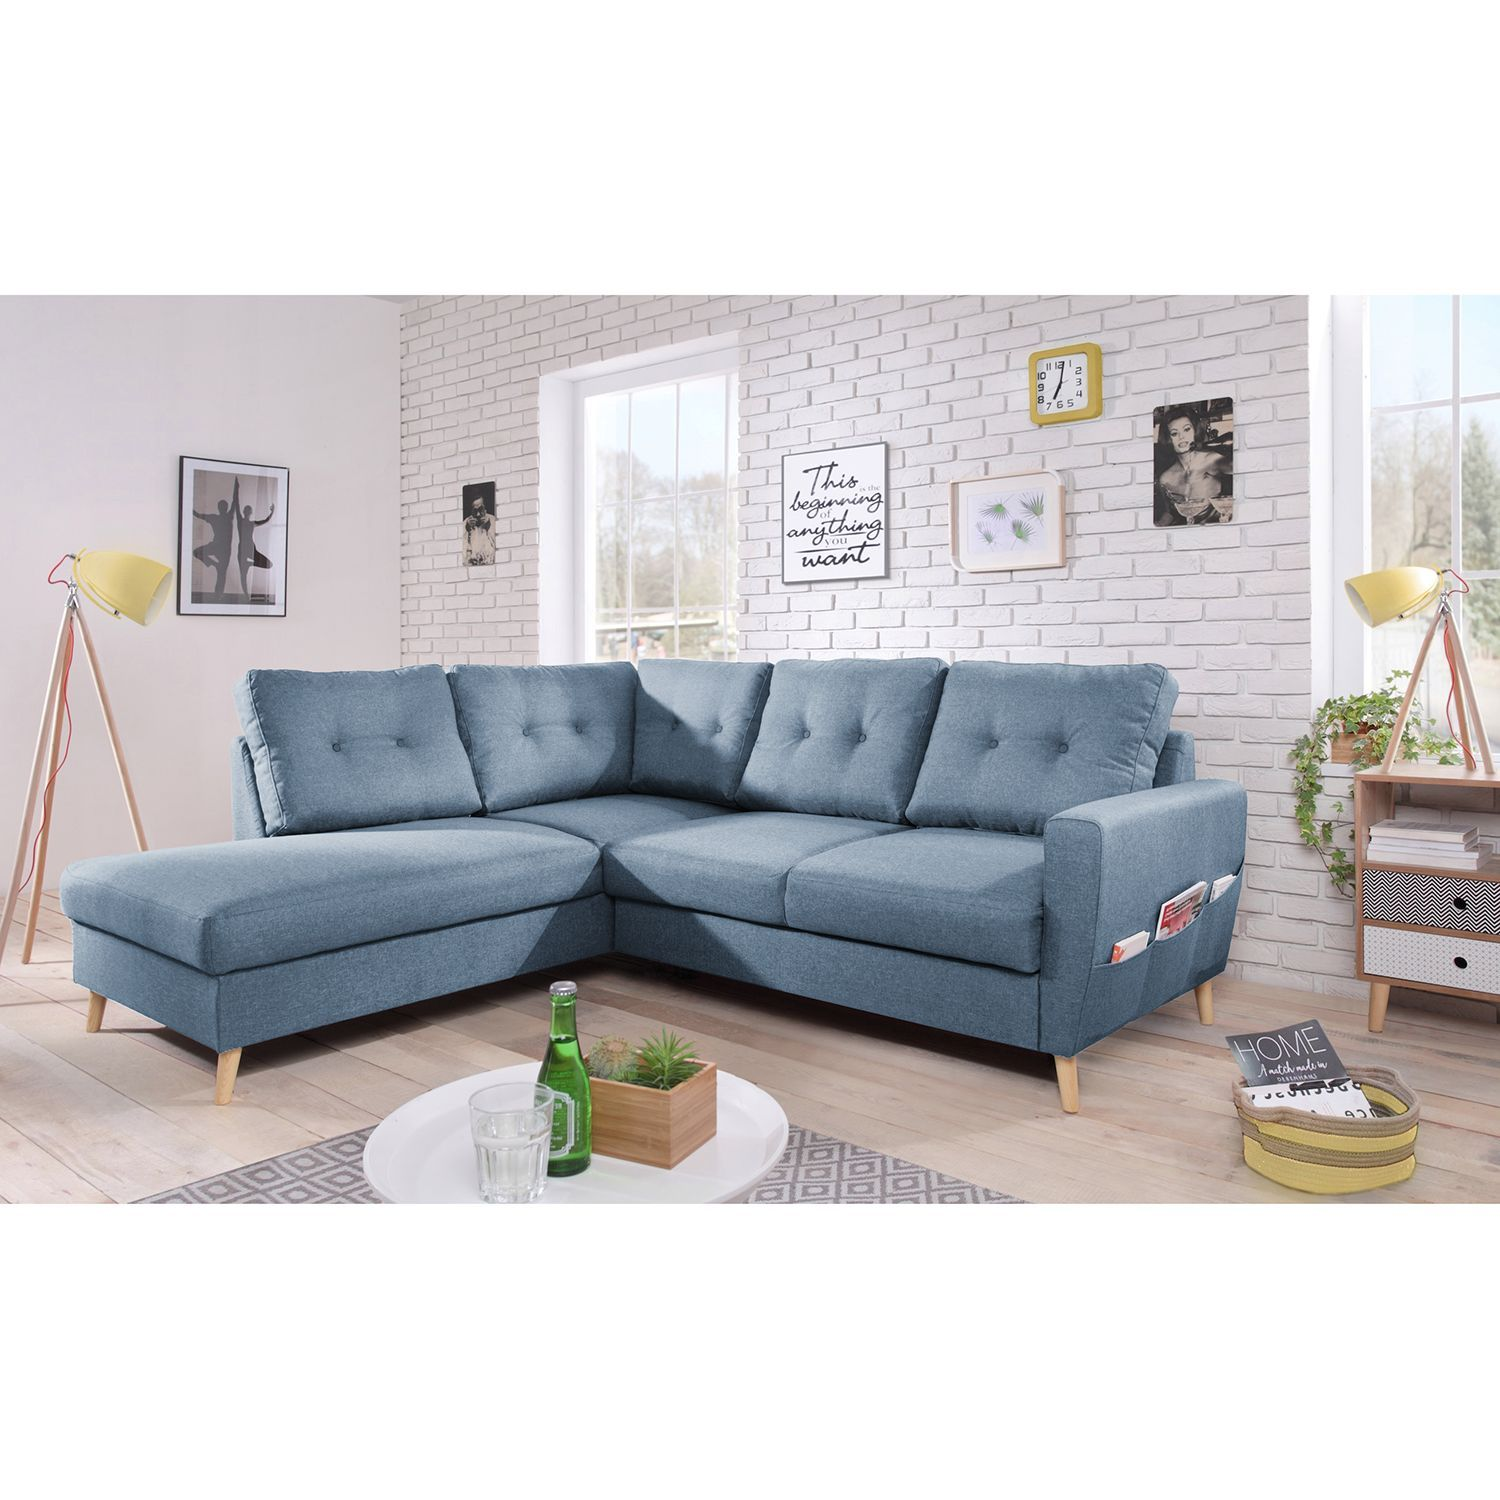 Ecksofa Sola Ecksofa Sola Ii In 2019 Products